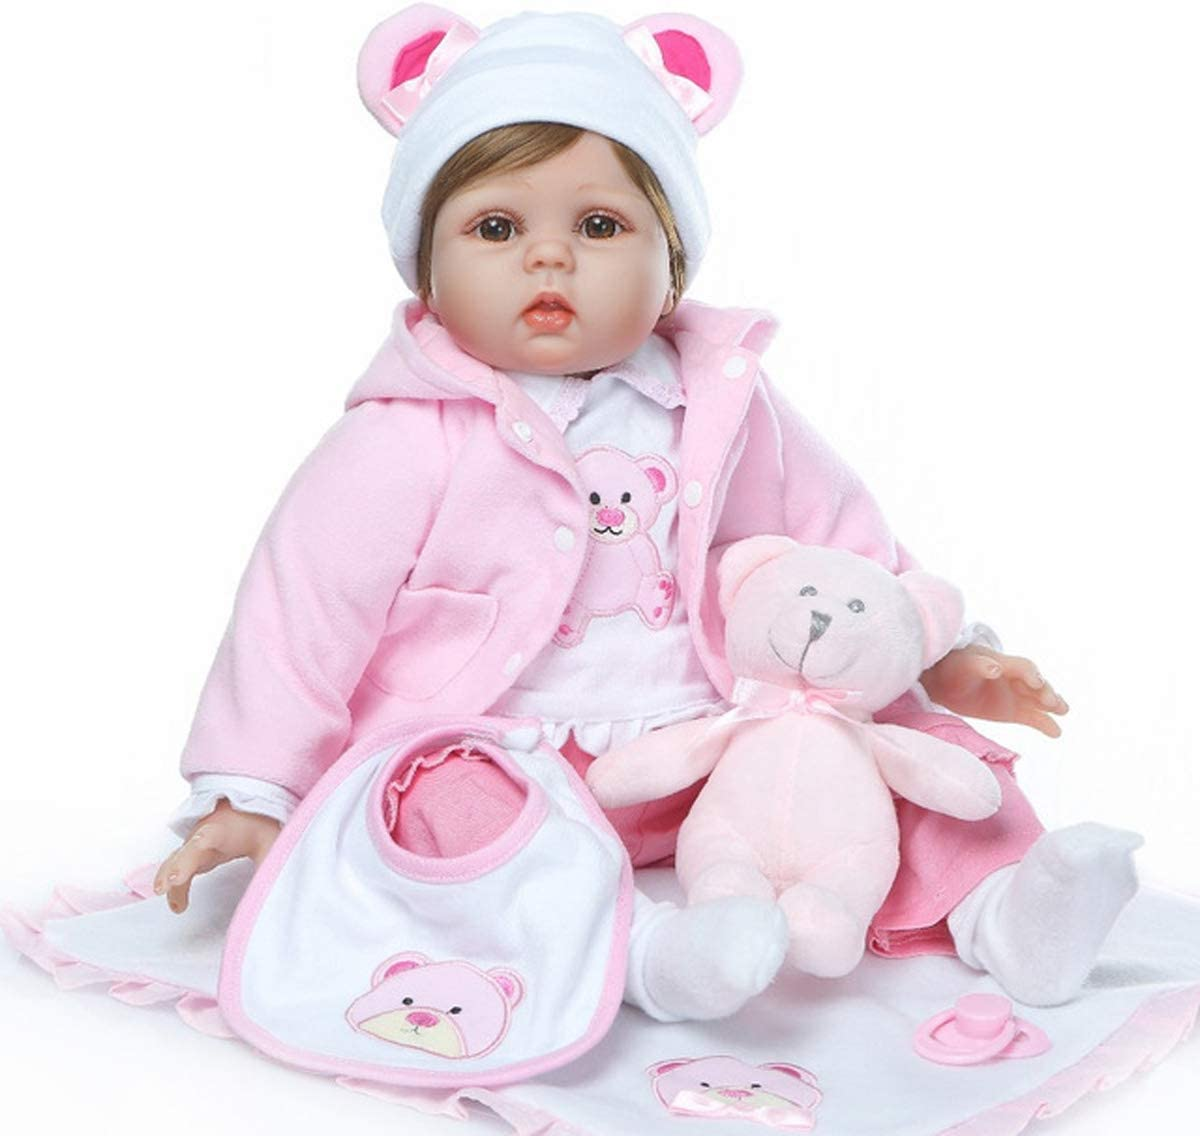 TERABITHIA 22inch Real store Life Baby Toys Dolls Outlet SALE Reborn Babies S Soft